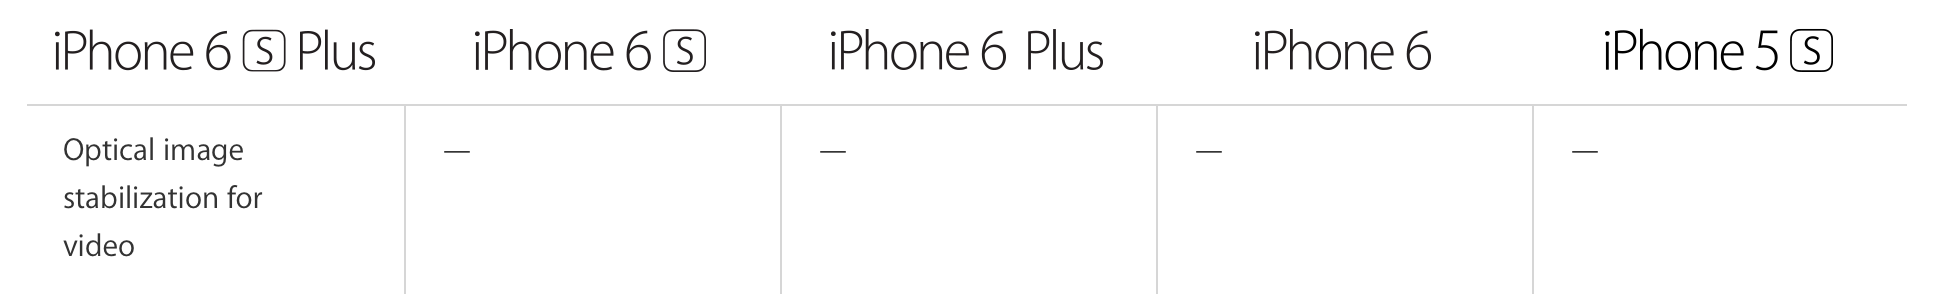 4K Video from iPhone 6S Plus Shows Striking Advantage of